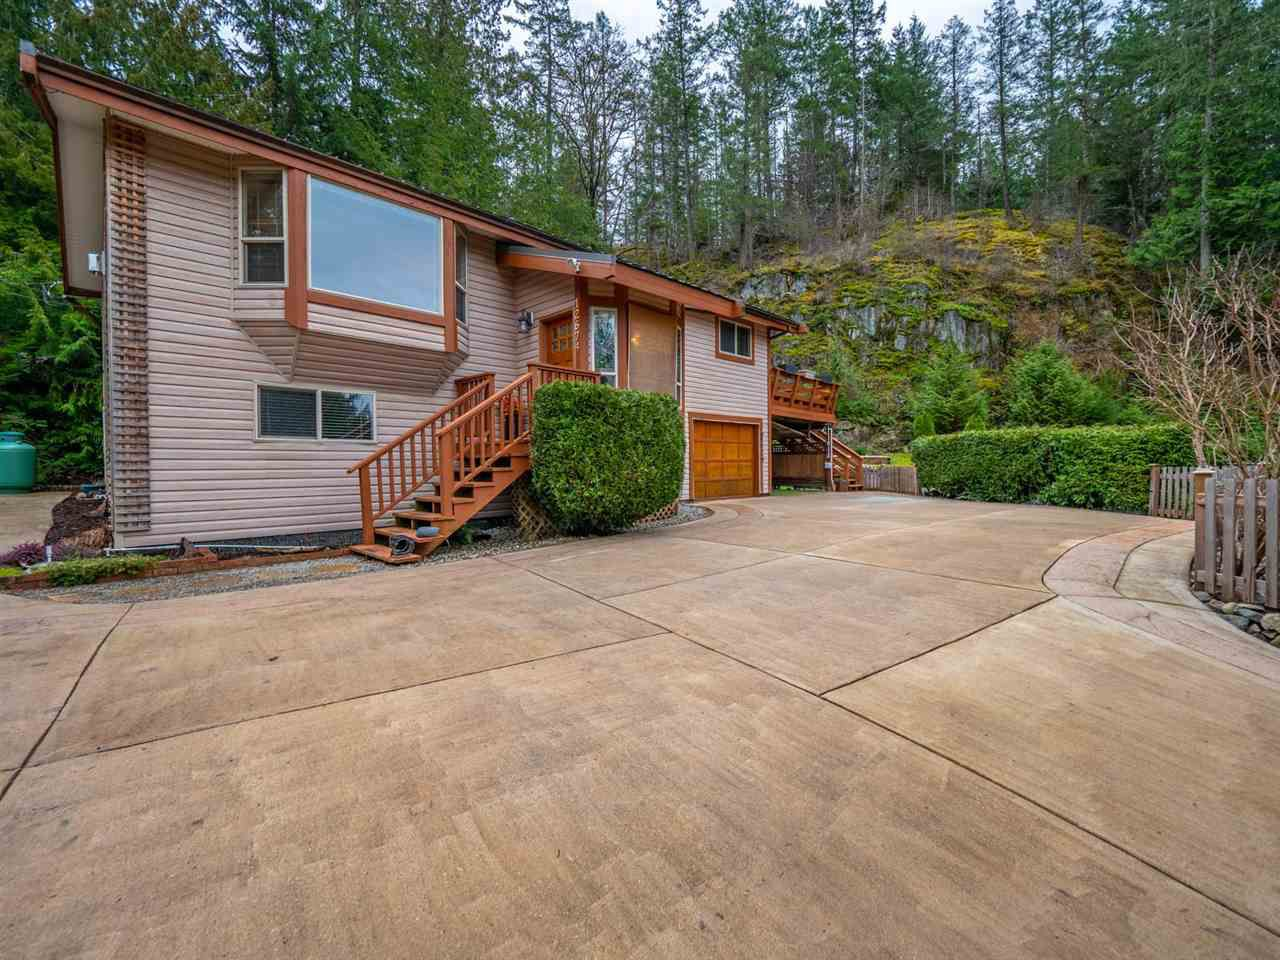 Main Photo: 12674 MERRILL Crescent in Pender Harbour: Pender Harbour Egmont House for sale (Sunshine Coast)  : MLS®# R2337589